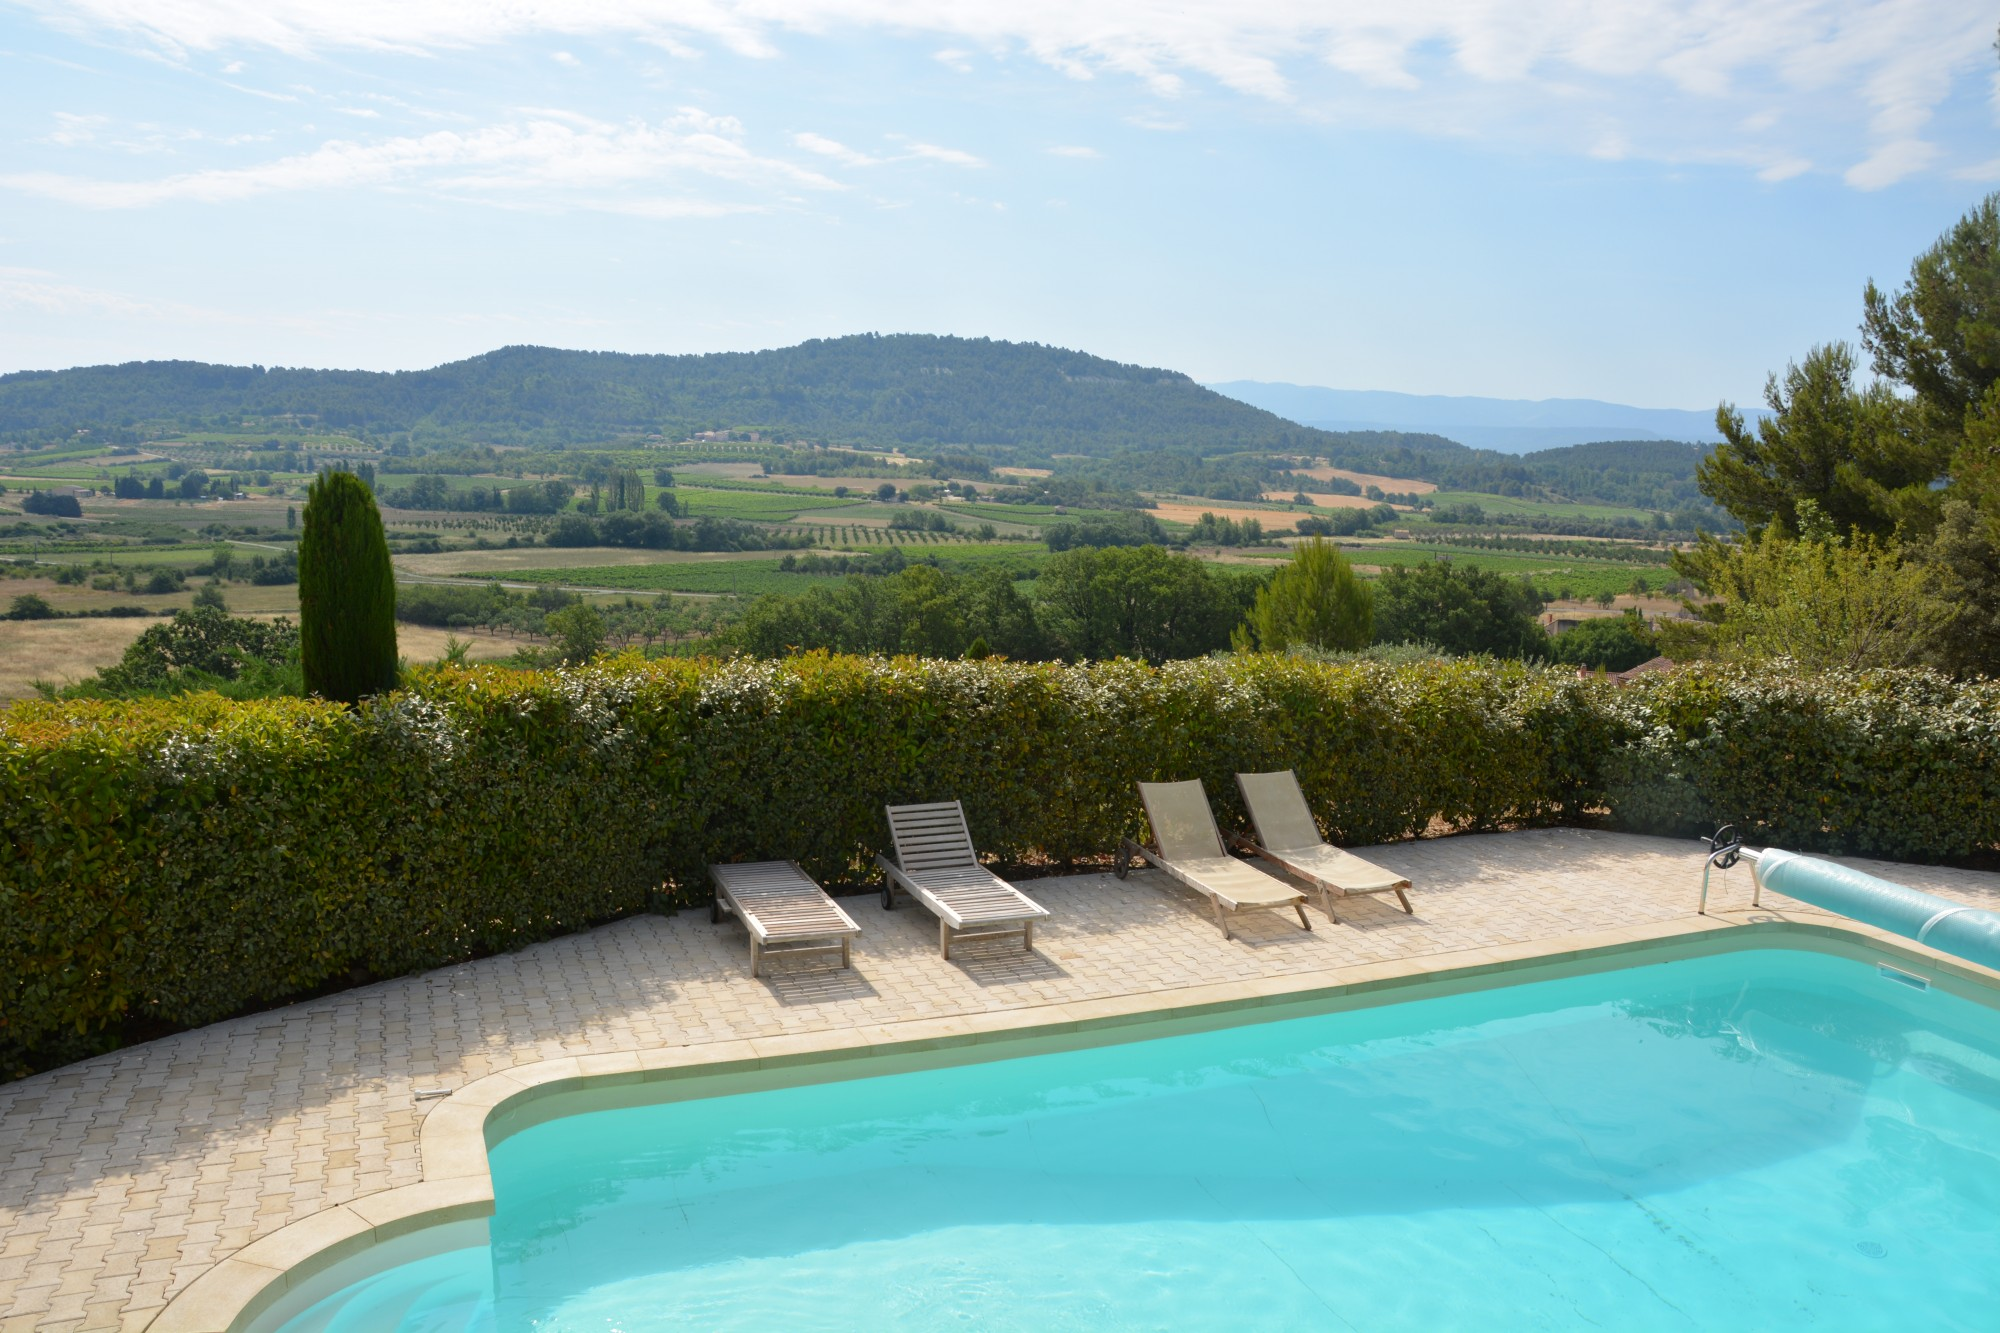 Camping luberon avec piscine camping luberon bergerie for Camping mimizan avec piscine